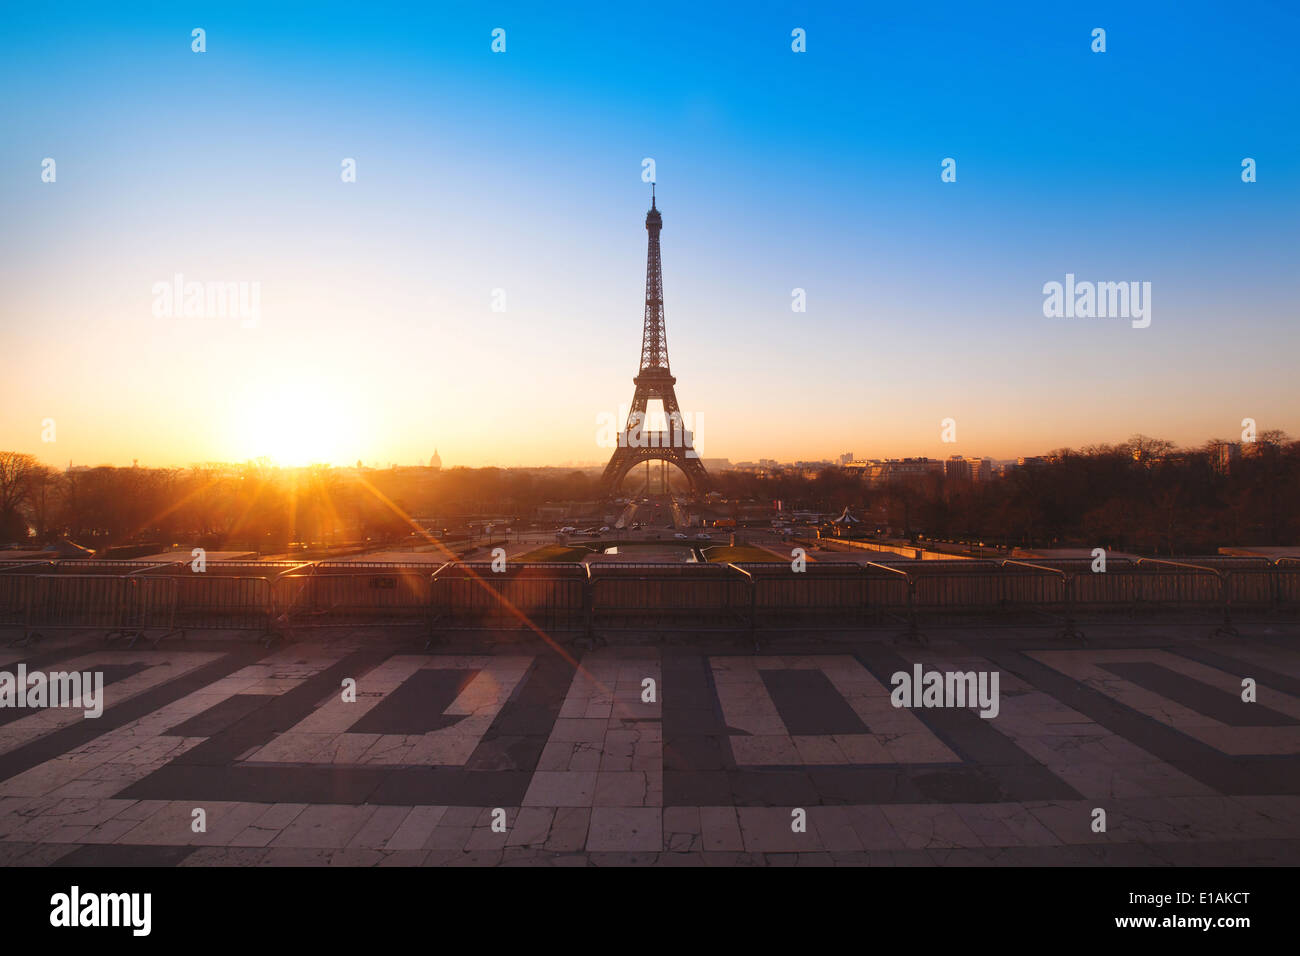 panoramic view of Paris, France - with place for the text - Stock Image